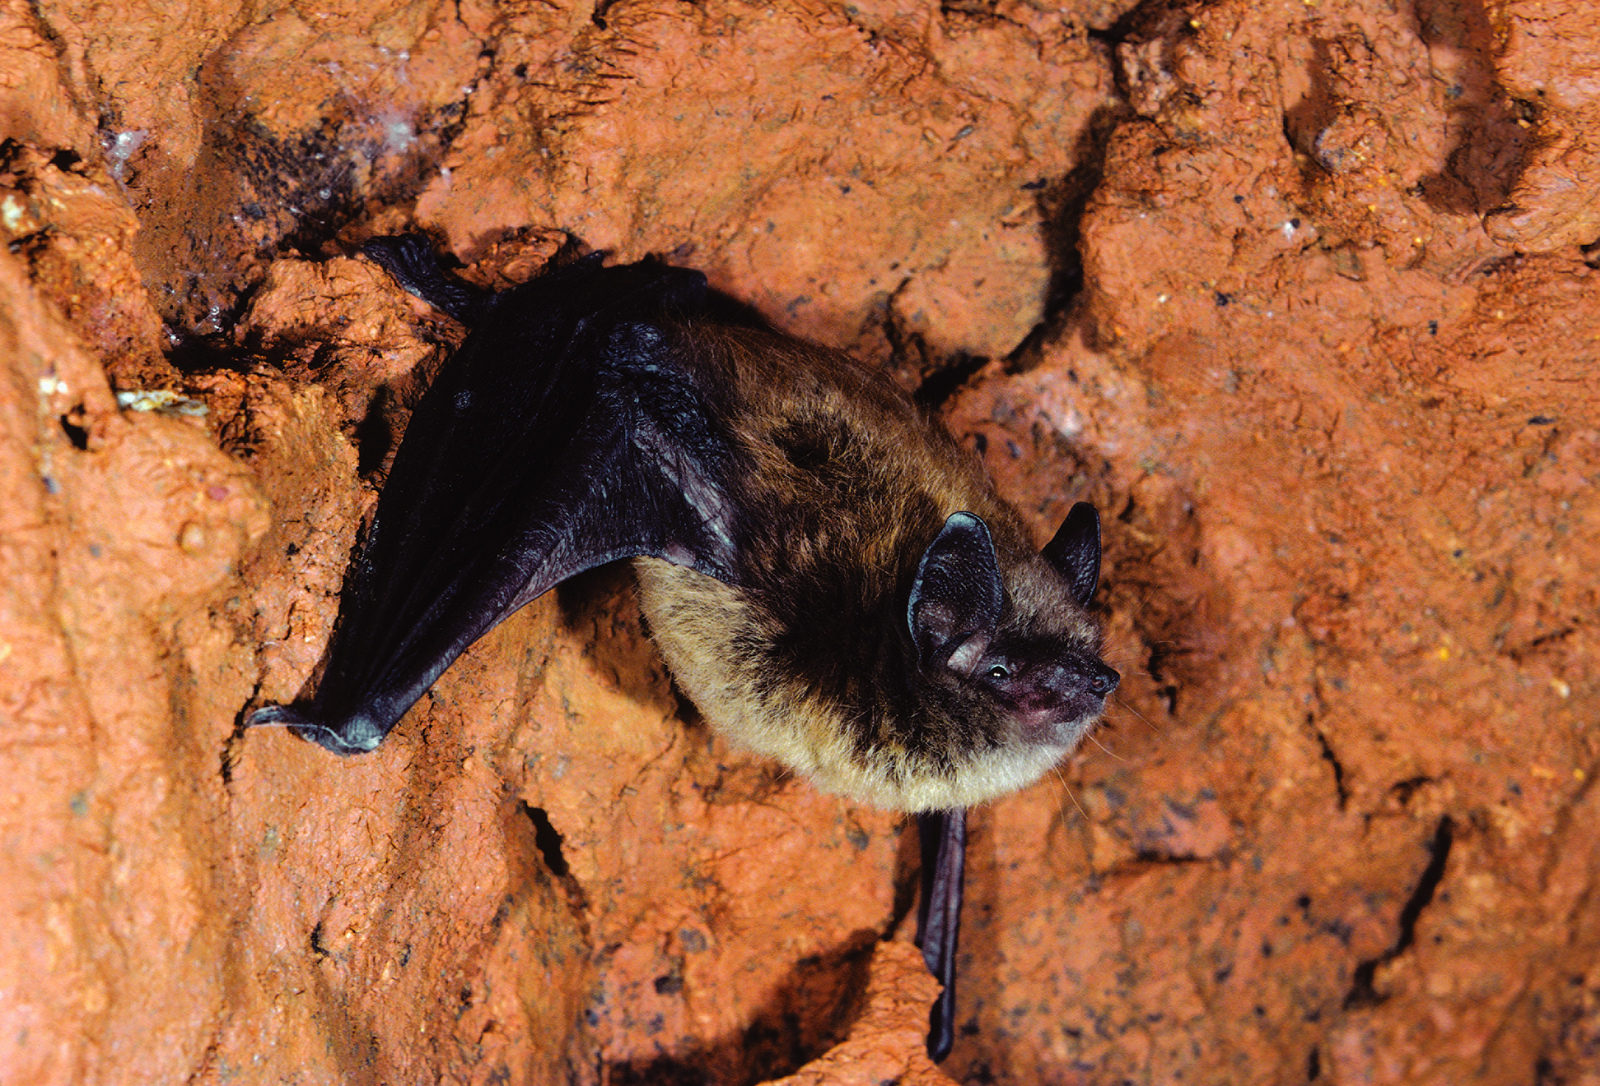 bats in shavers creek